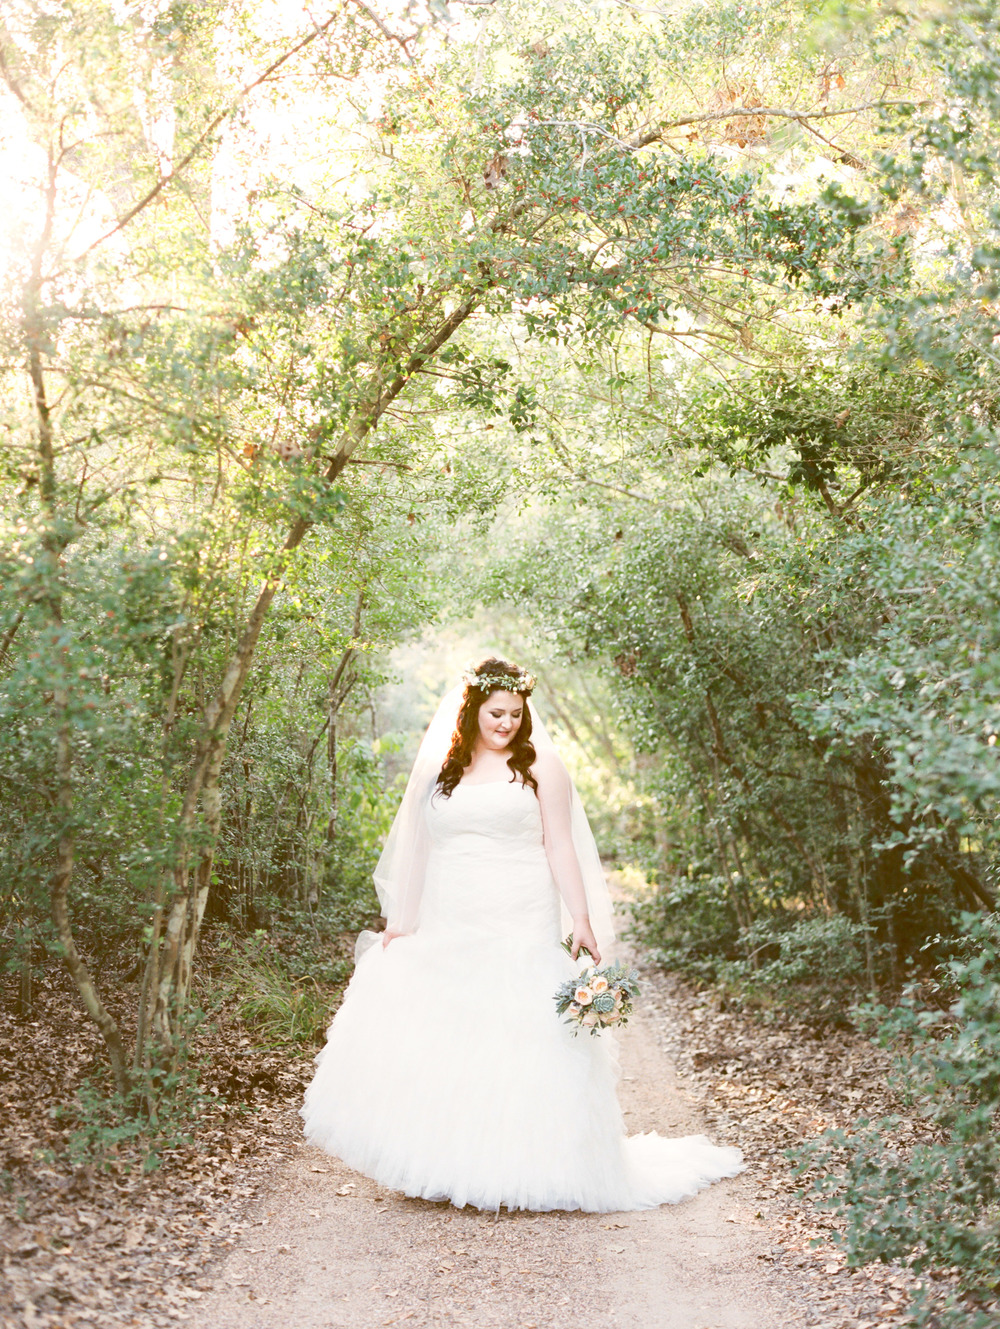 Sarah Best Photography - Elizabeth's Bridals - 7F Lodge-113.jpg